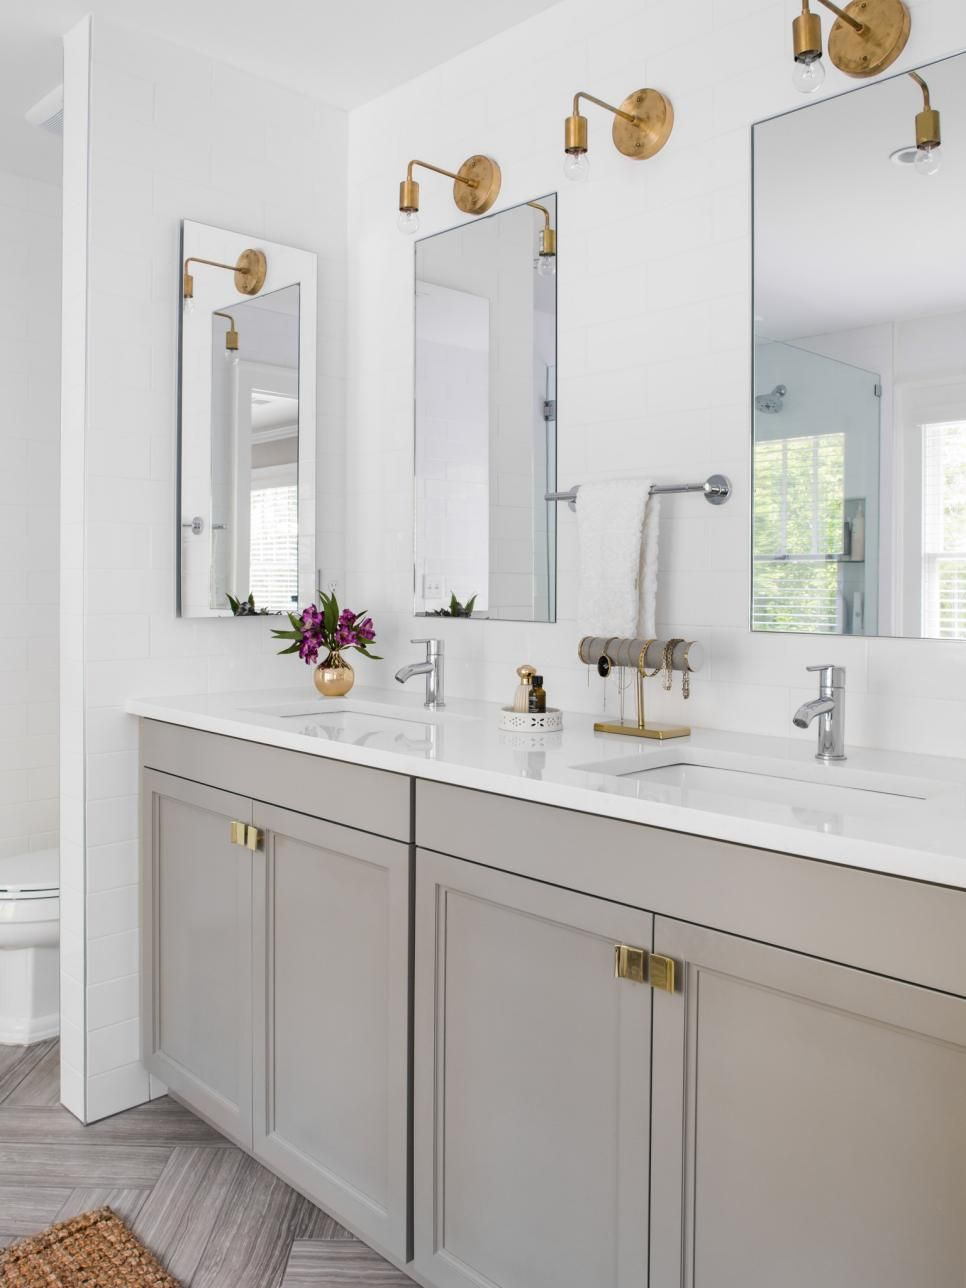 Cheap Ways to Freshen Up your Bathroom Countertop | Countertop ...